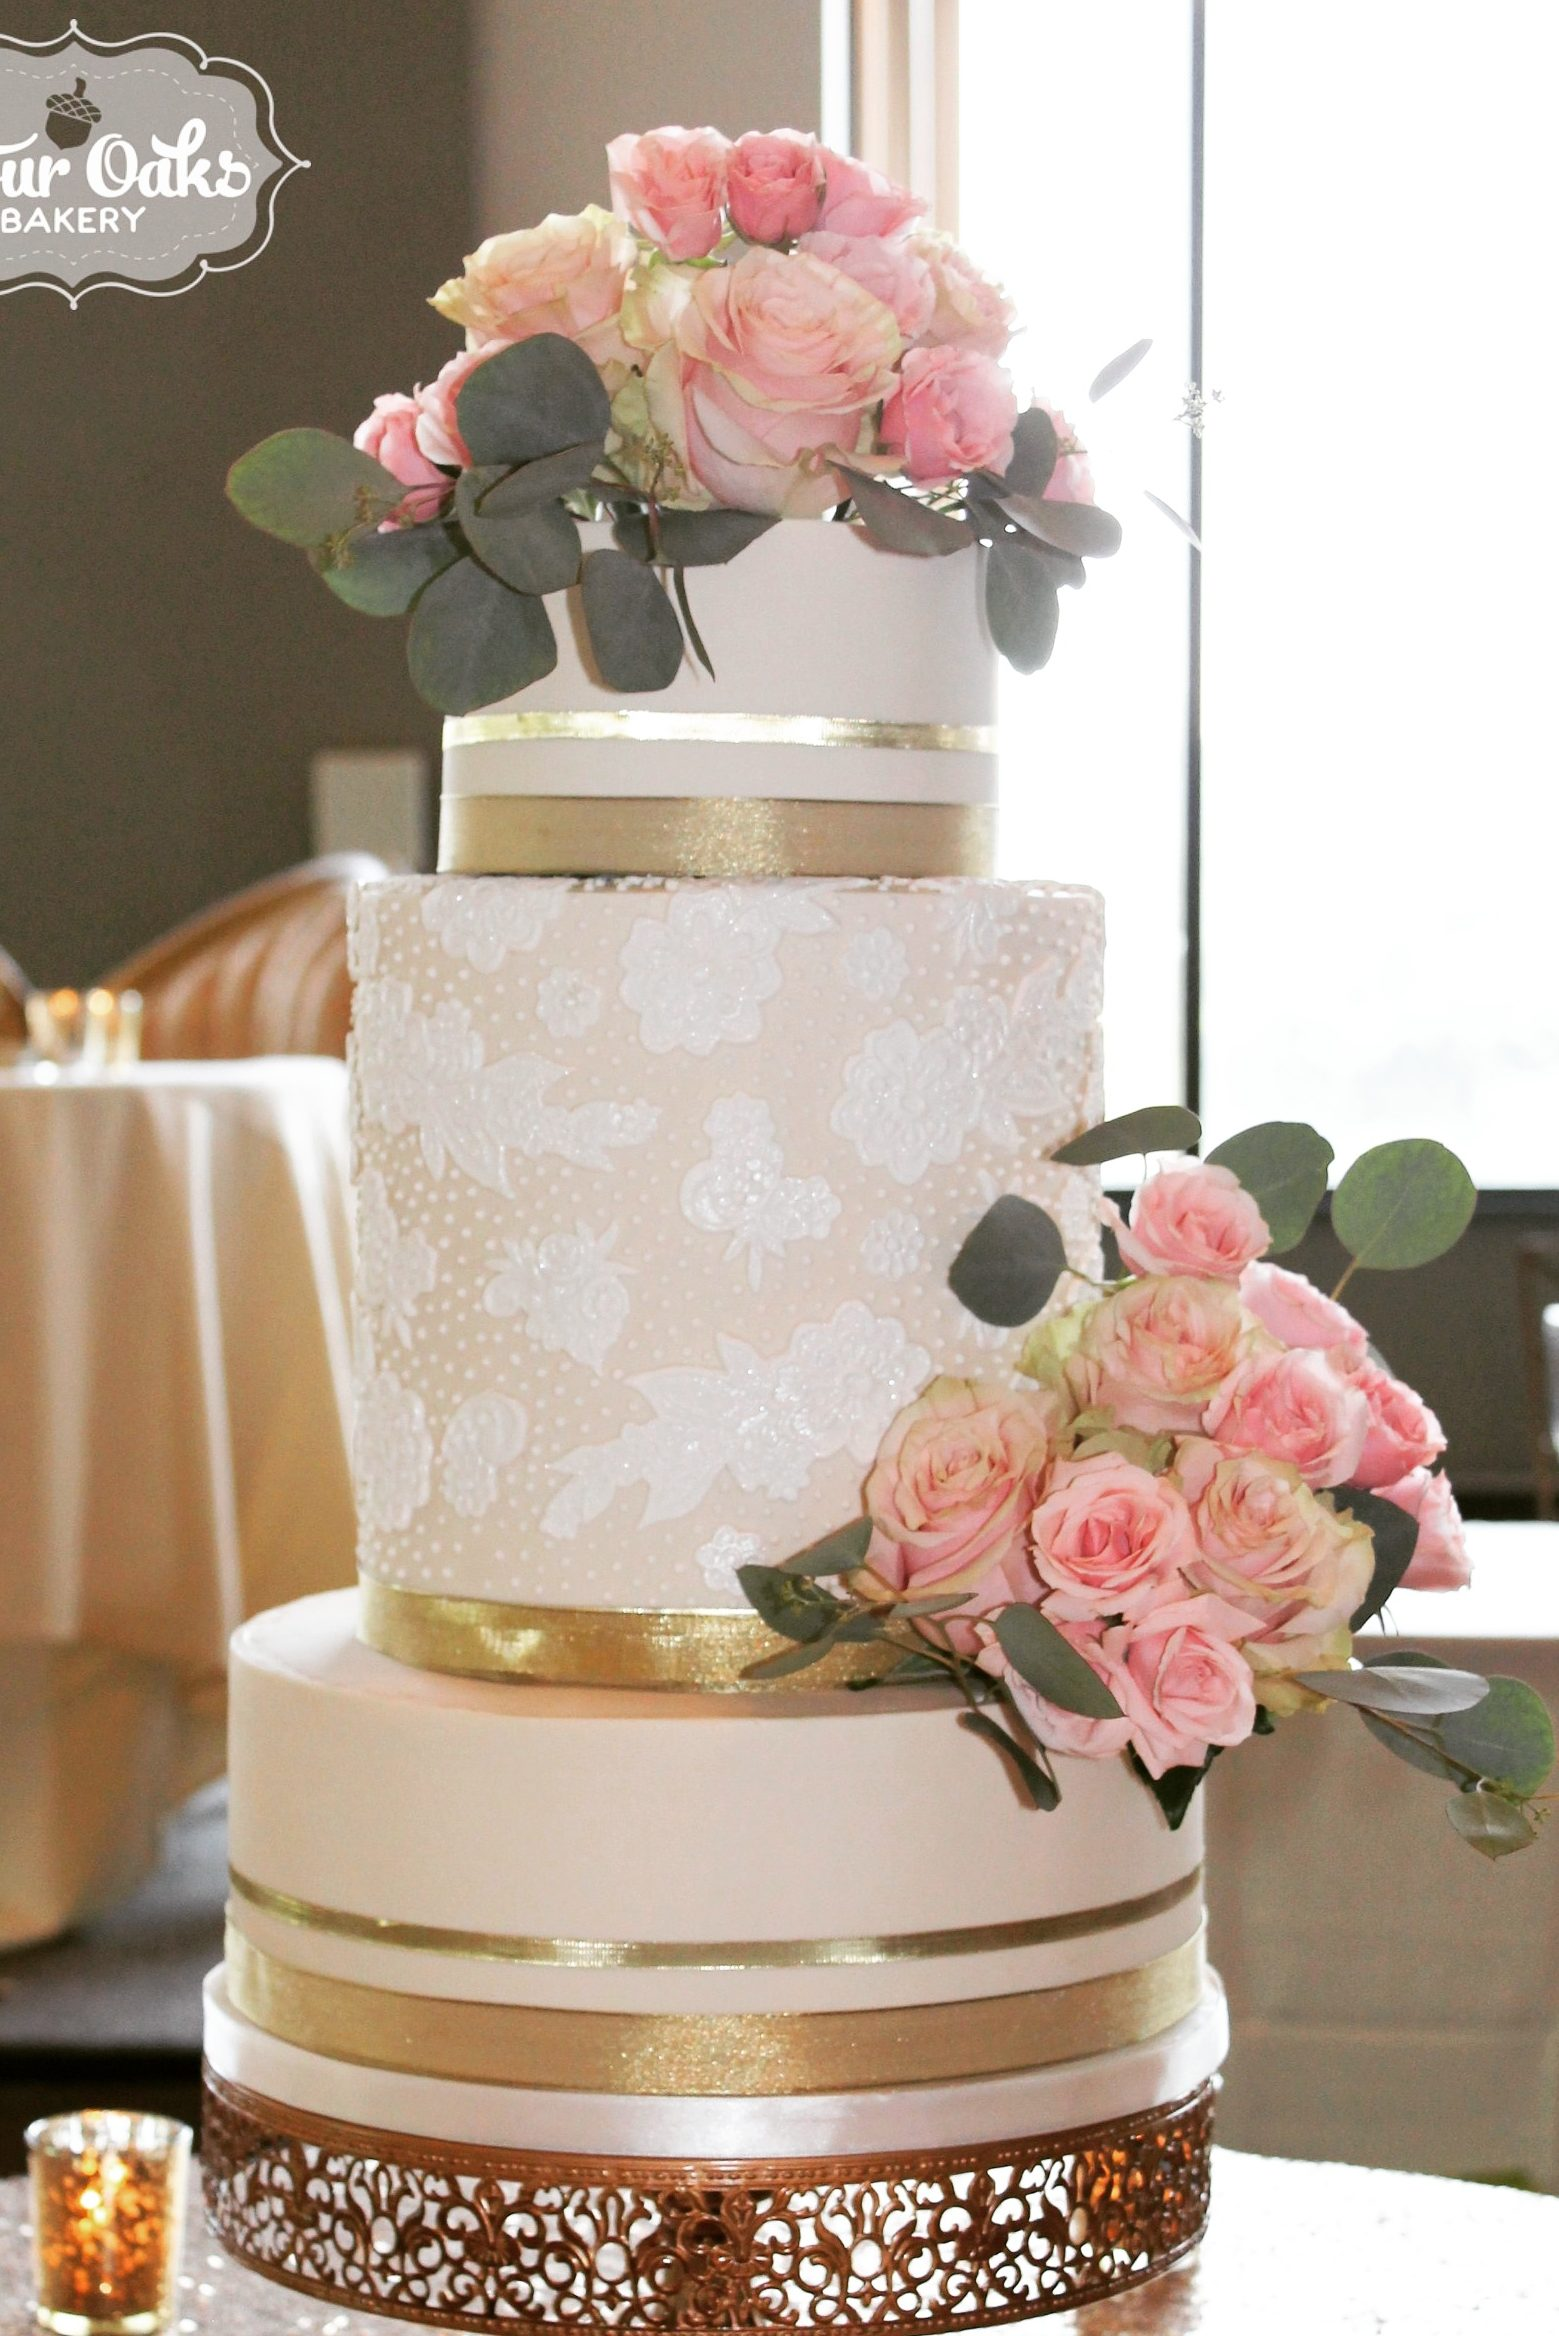 Courtney and Luke's Ivory and Gold Wedding Cake at Chestnut Ridge Resort in Blairsville, PA